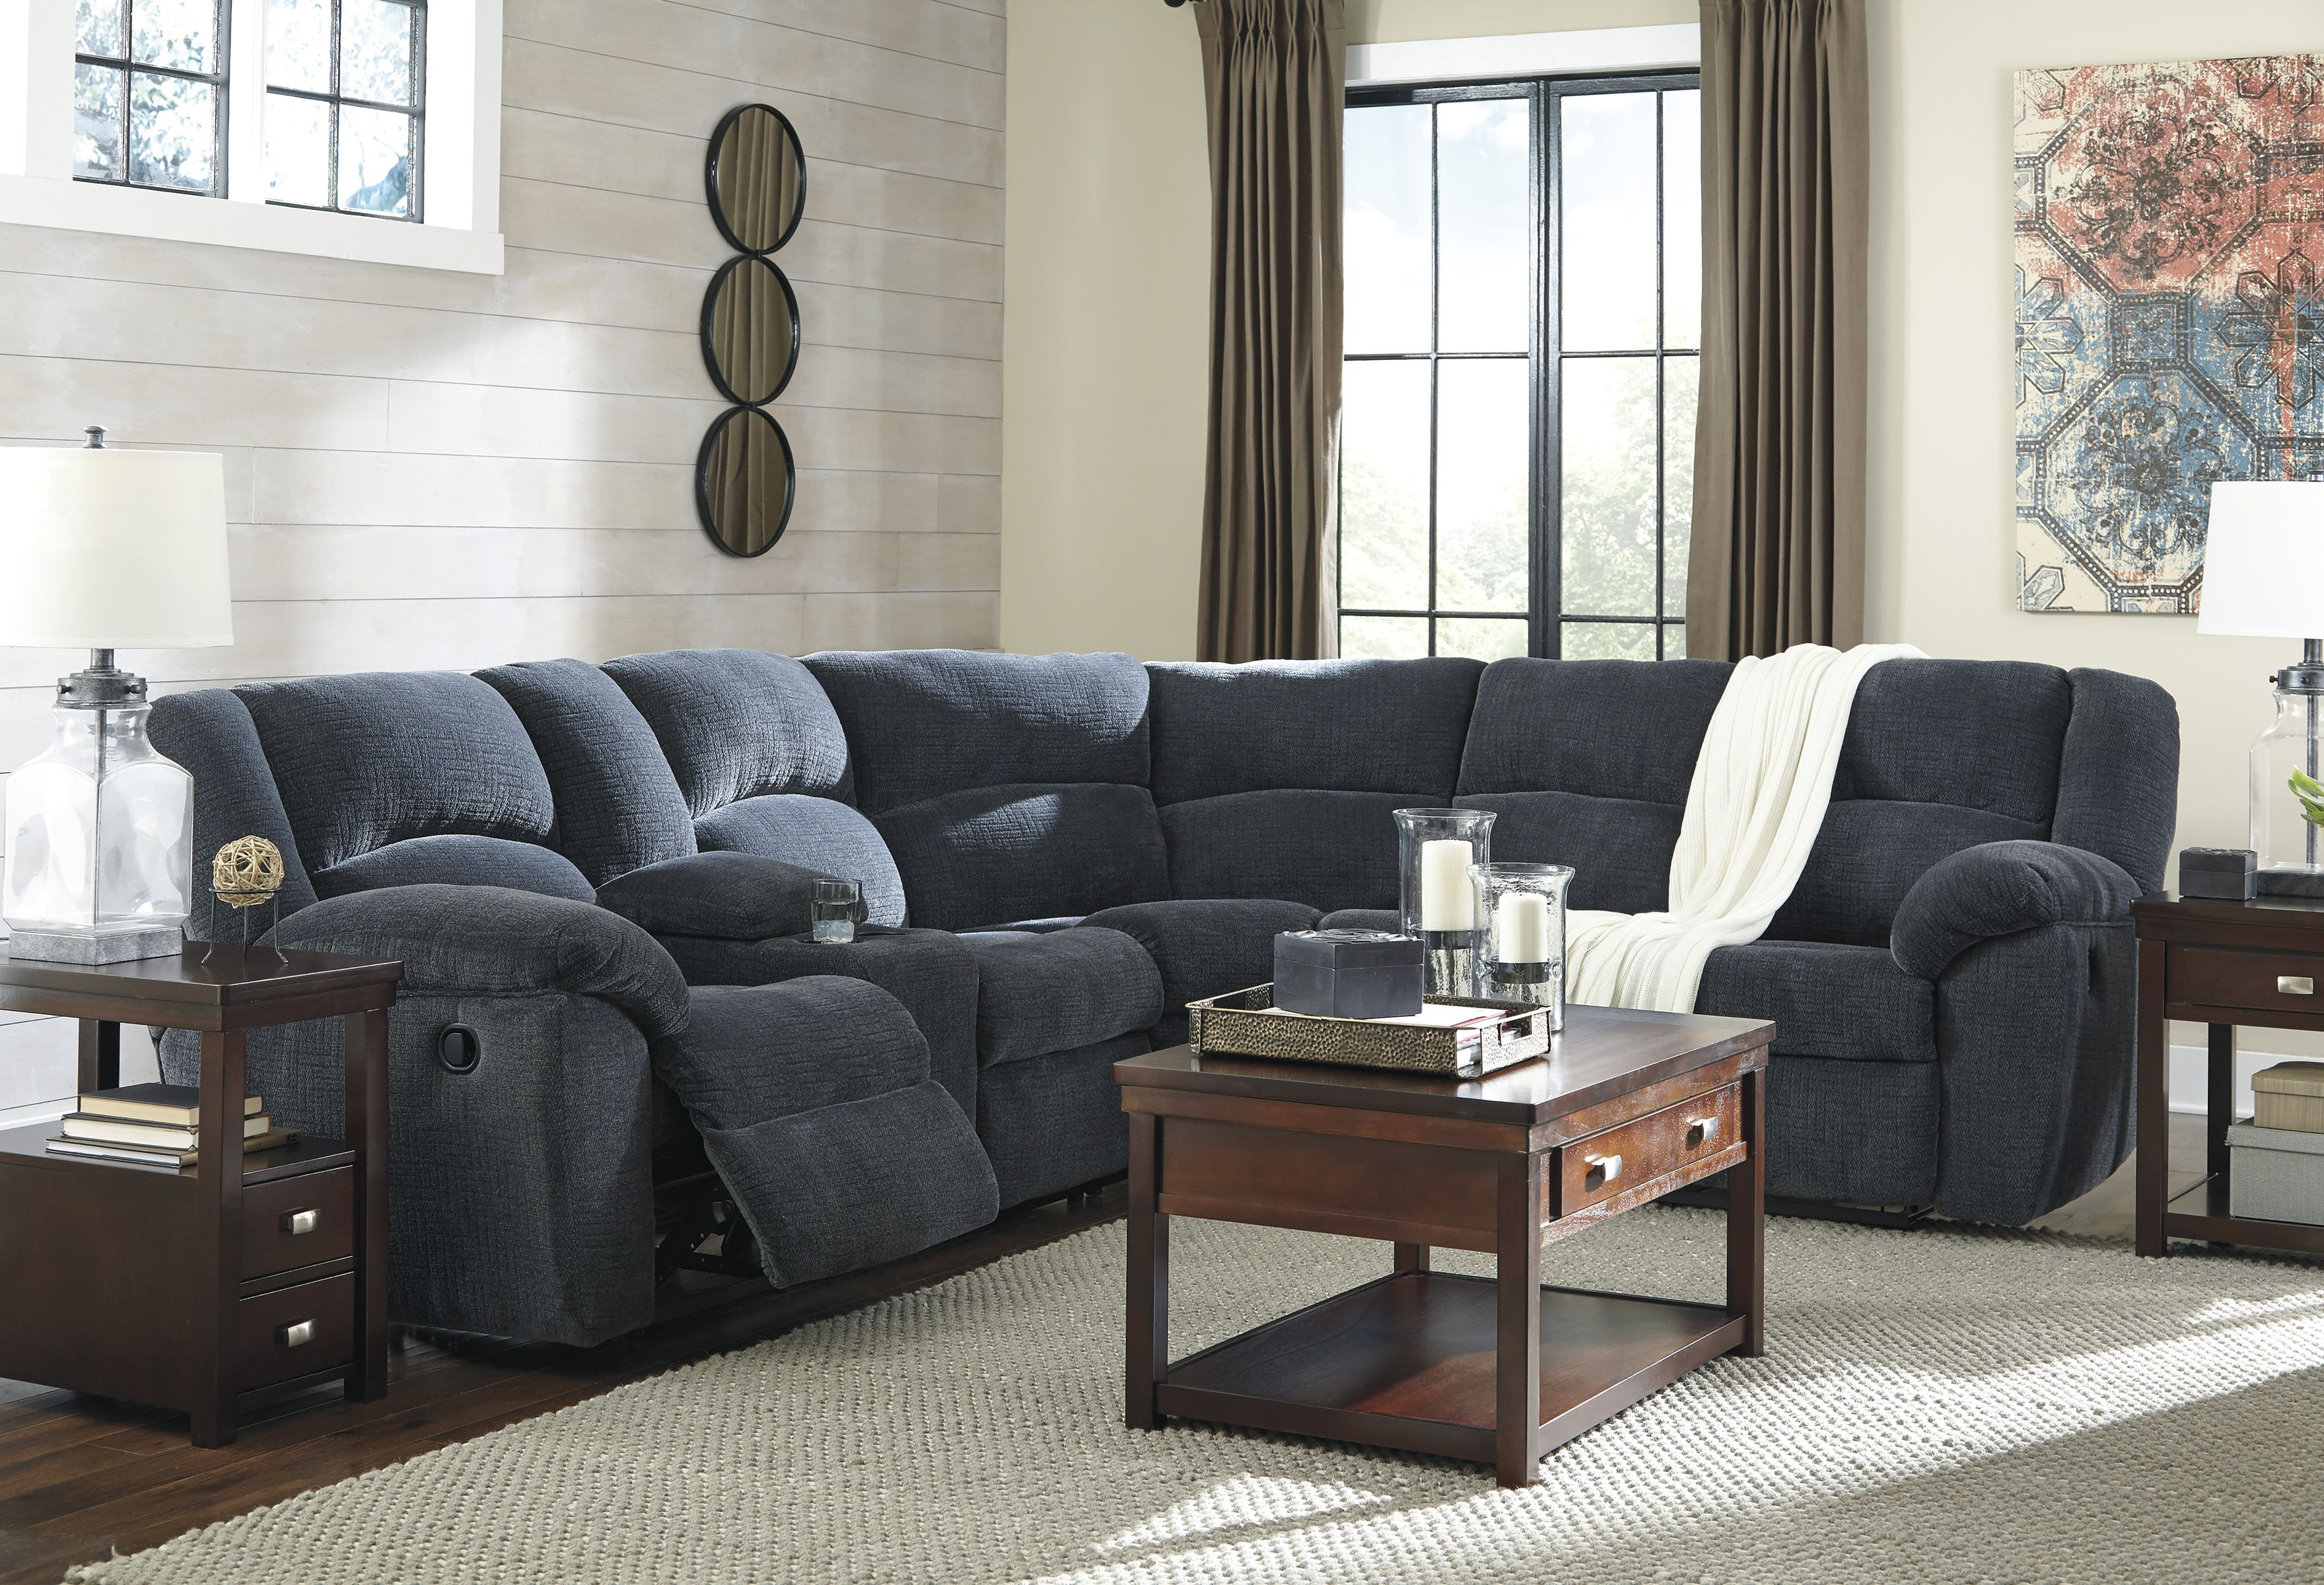 Our Seven Seas Sectional Has 2 Recliners And A Console With Storage And Cup Holders For Your Conven Reclining Sectional Fabric Sectional Sofas Living Room Sets